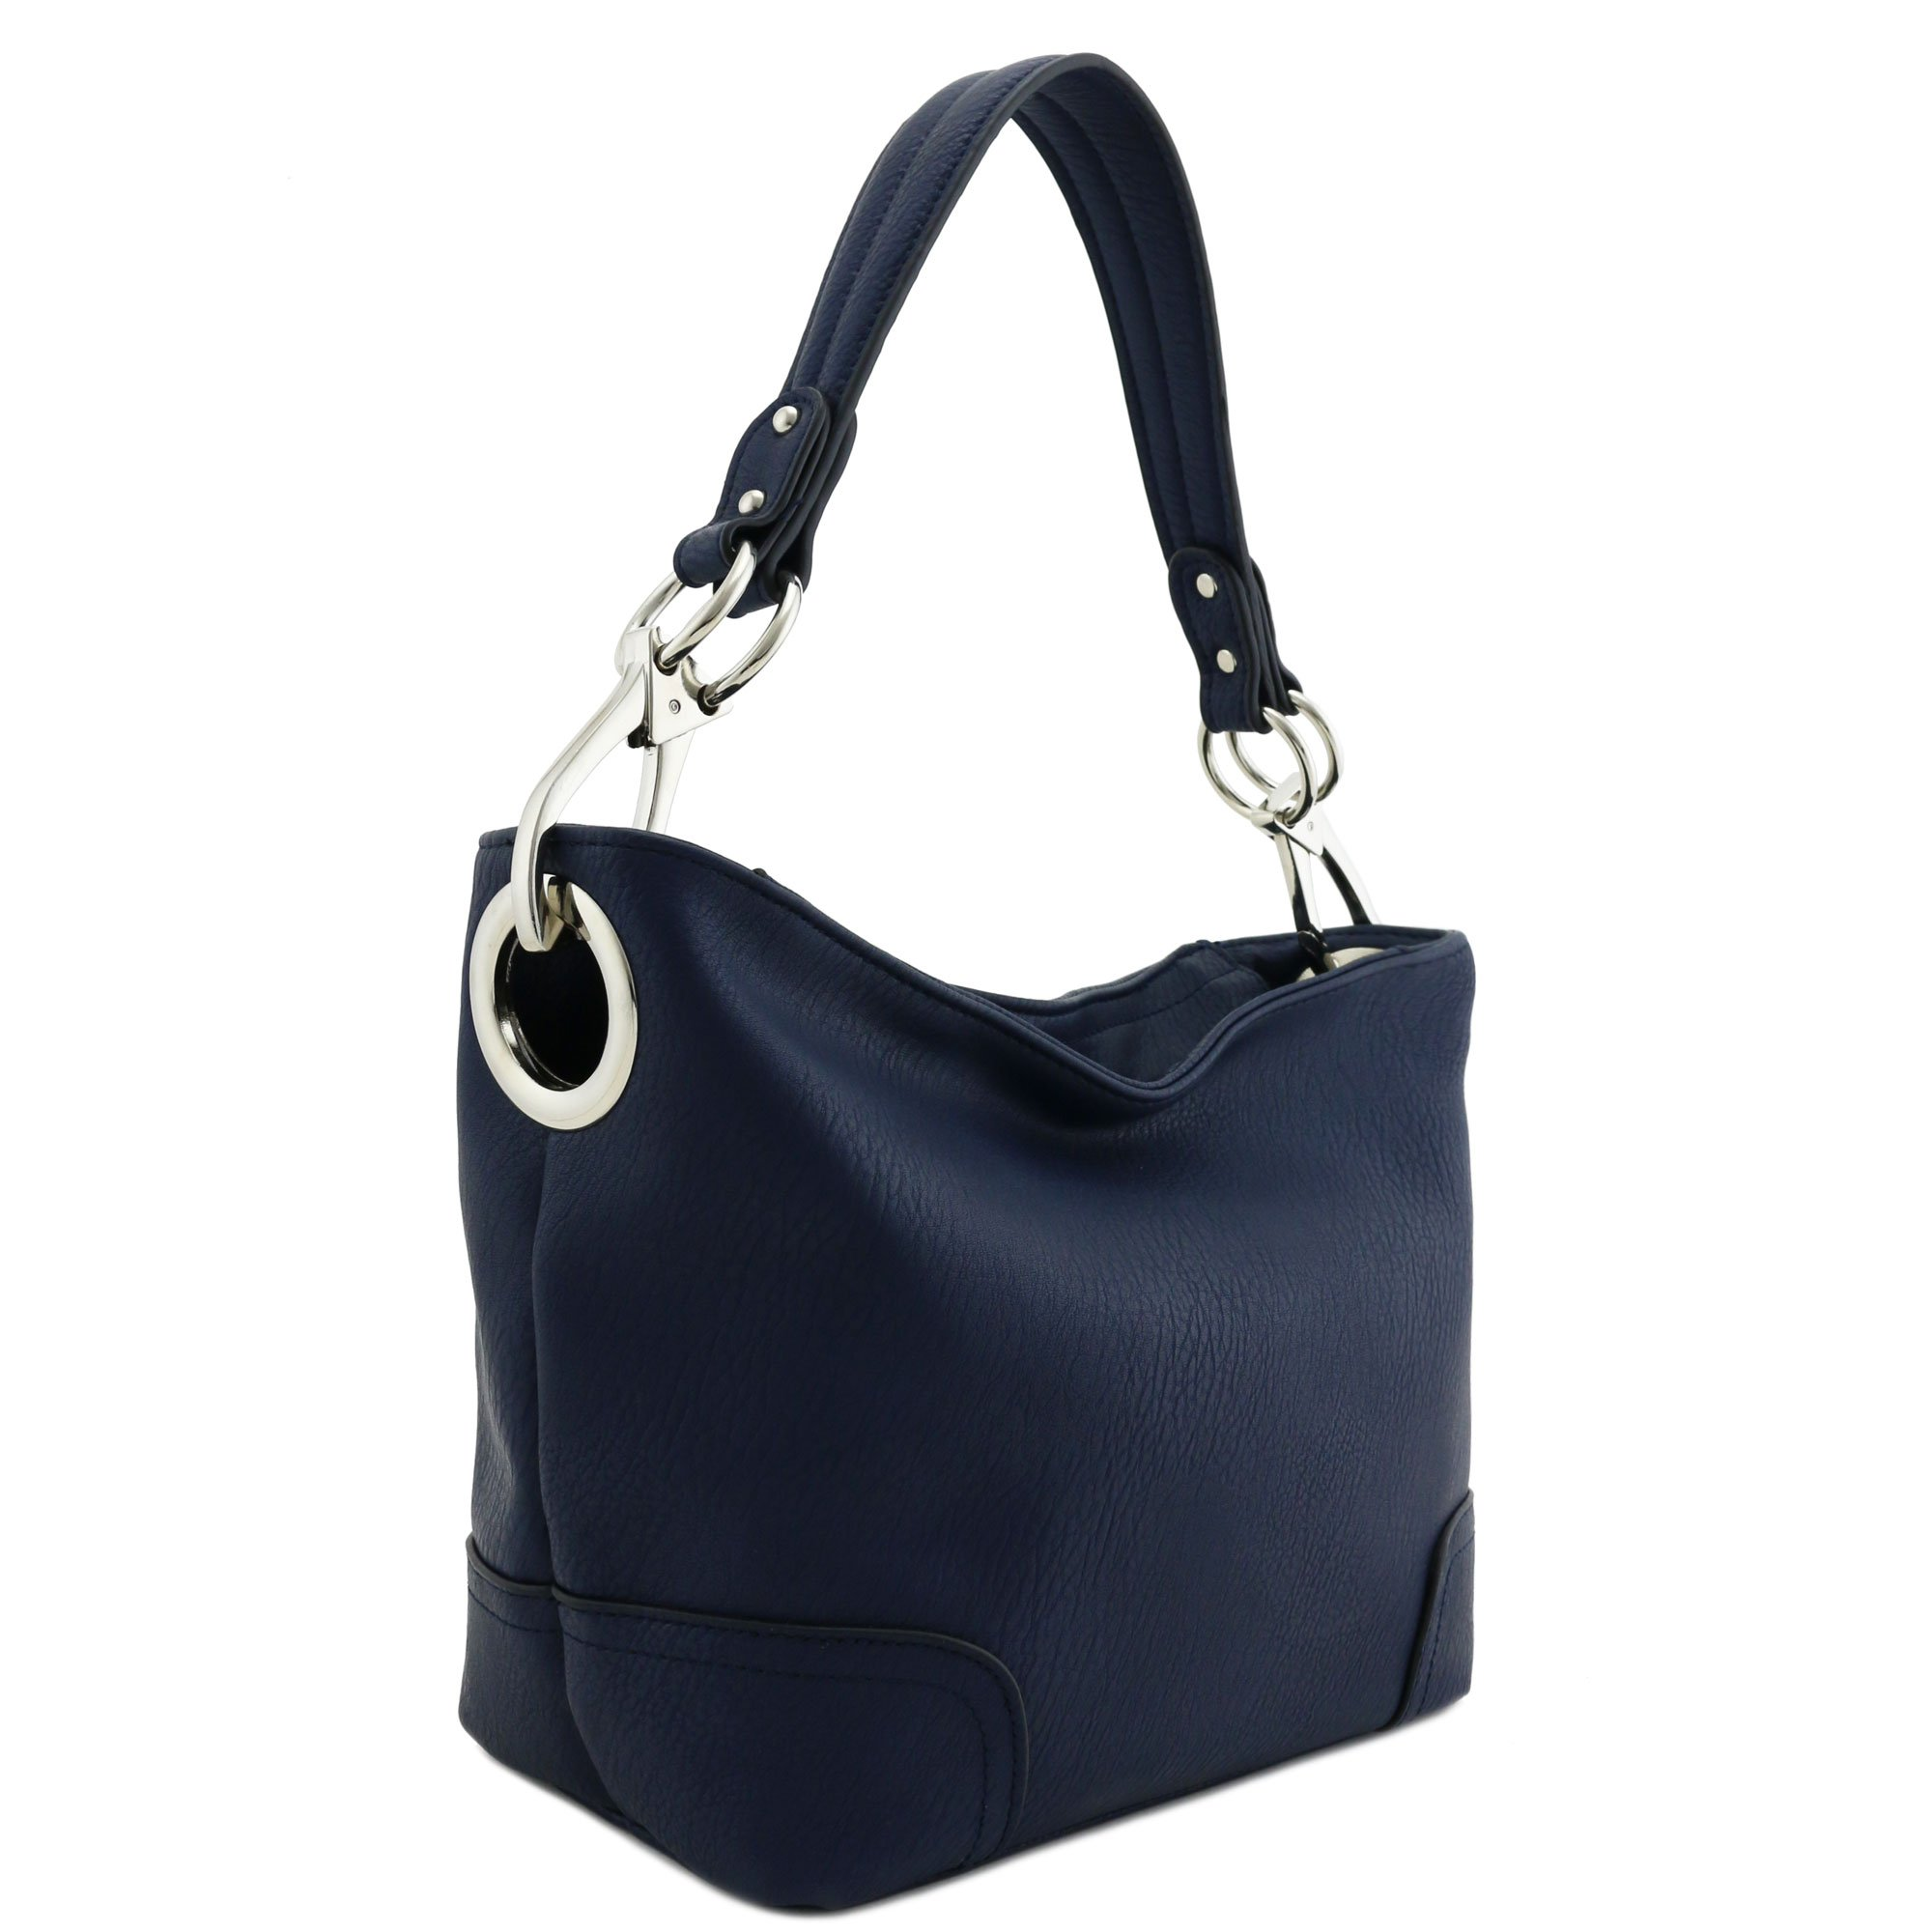 Hobo Shoulder Bag with Snap Hook Hardware Small (Navy) by Alyssa